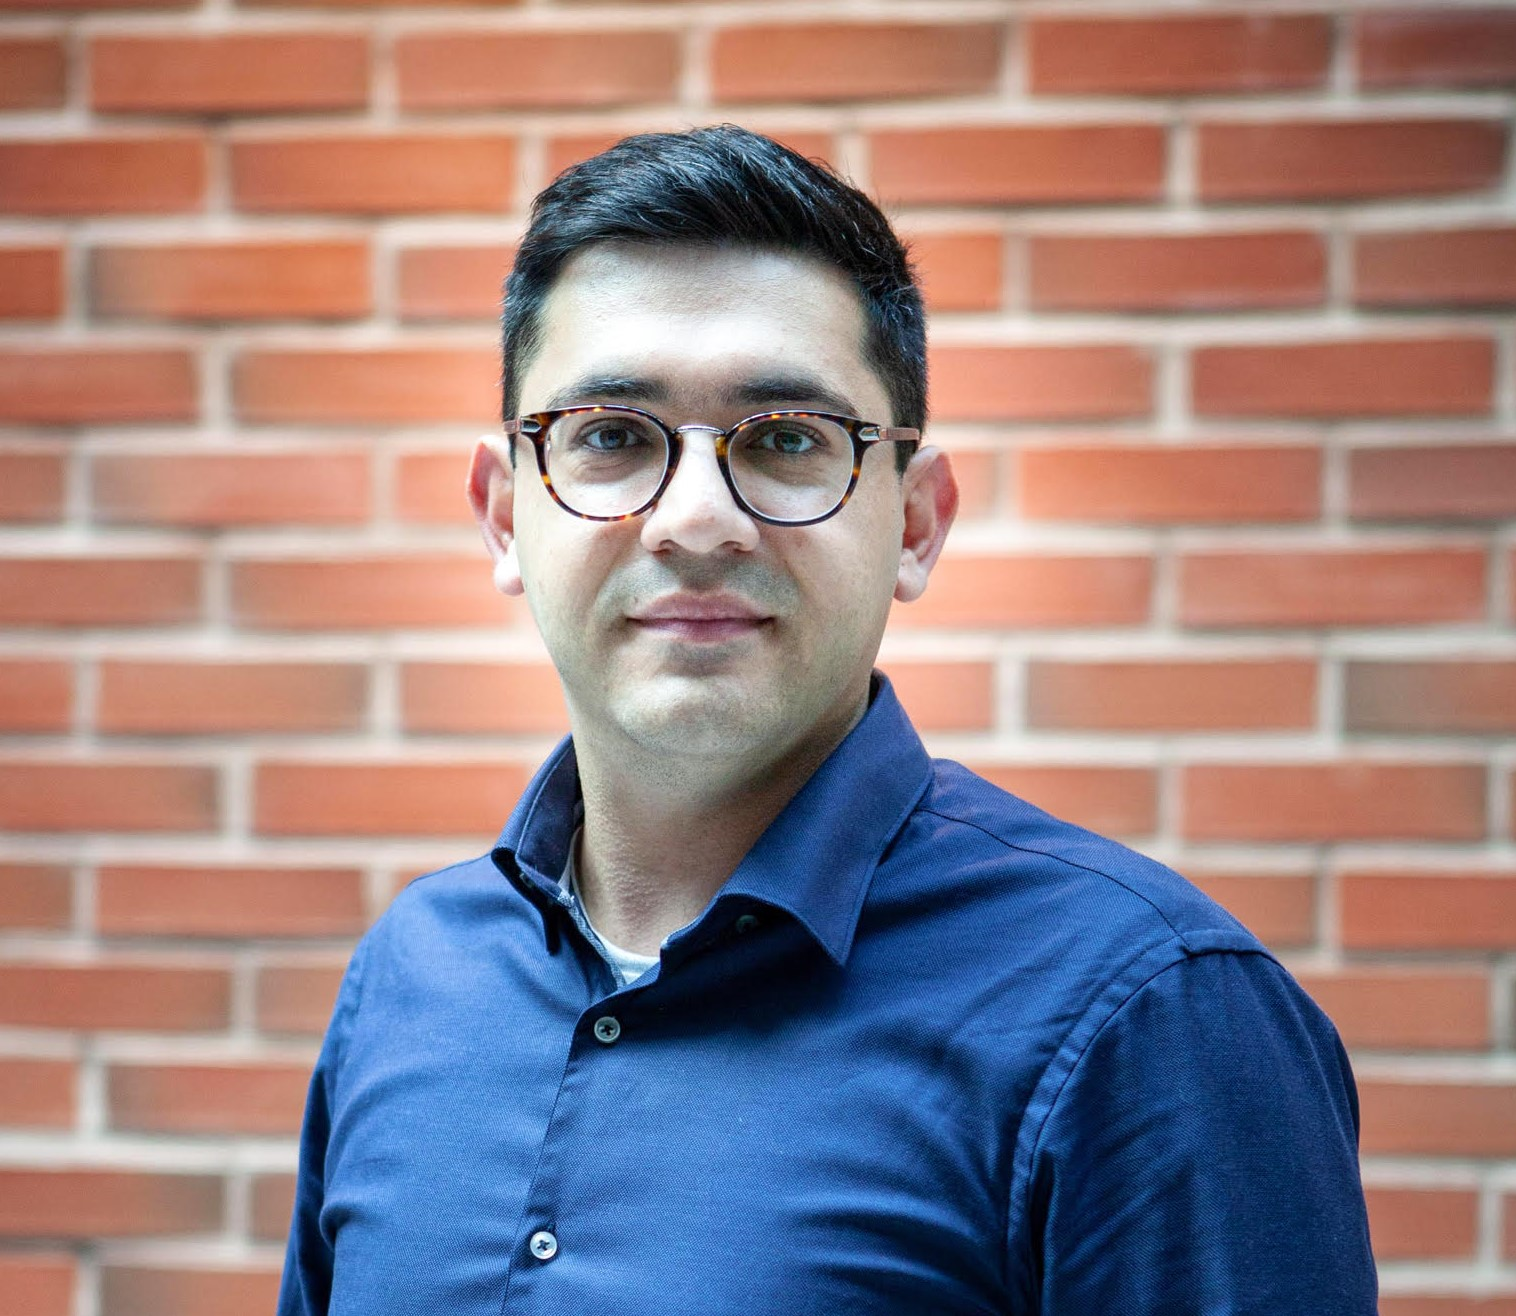 Photo of Arash Hajikhani